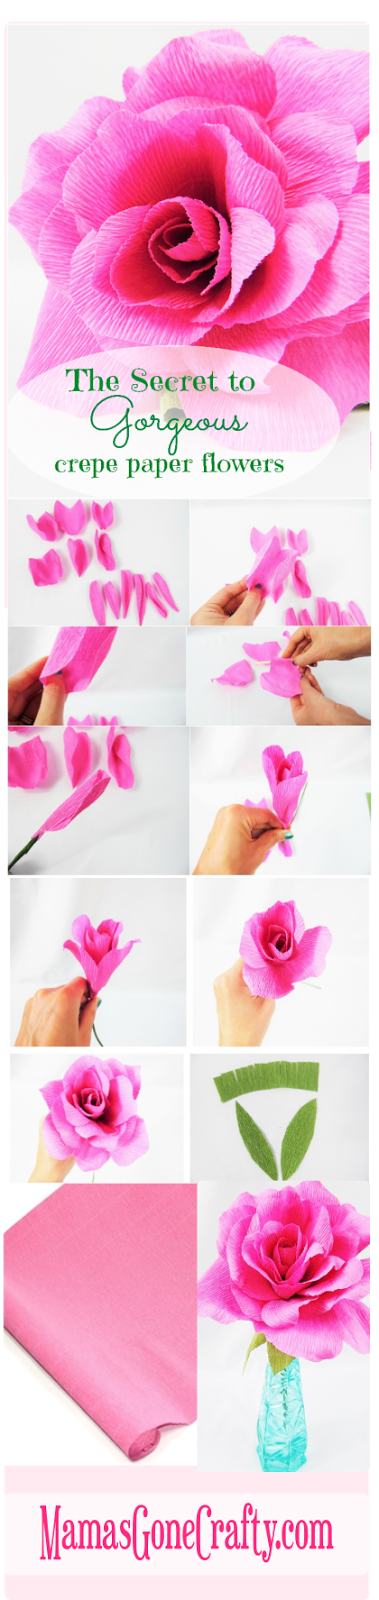 The secret to perfect crepe paper flowers crepe paper roses crepe how to make crepe paper flowers crepe paper roses templates and tutorial mightylinksfo